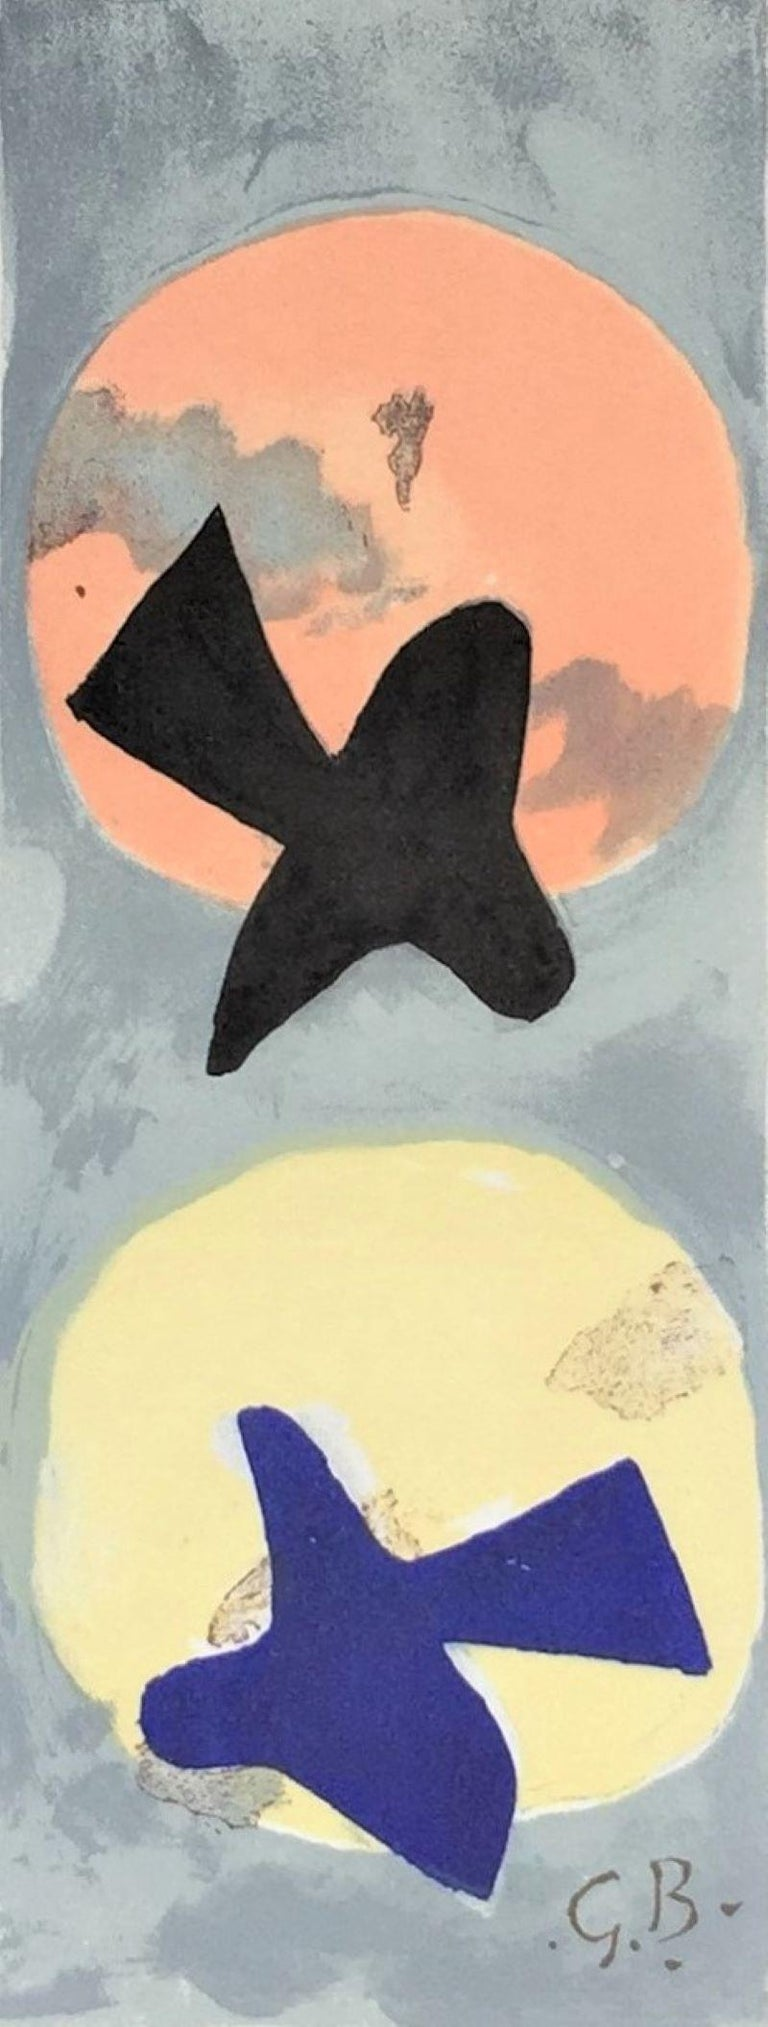 (after) Georges Braque Abstract Print - Soleil et lune II (Sun and Moon II)